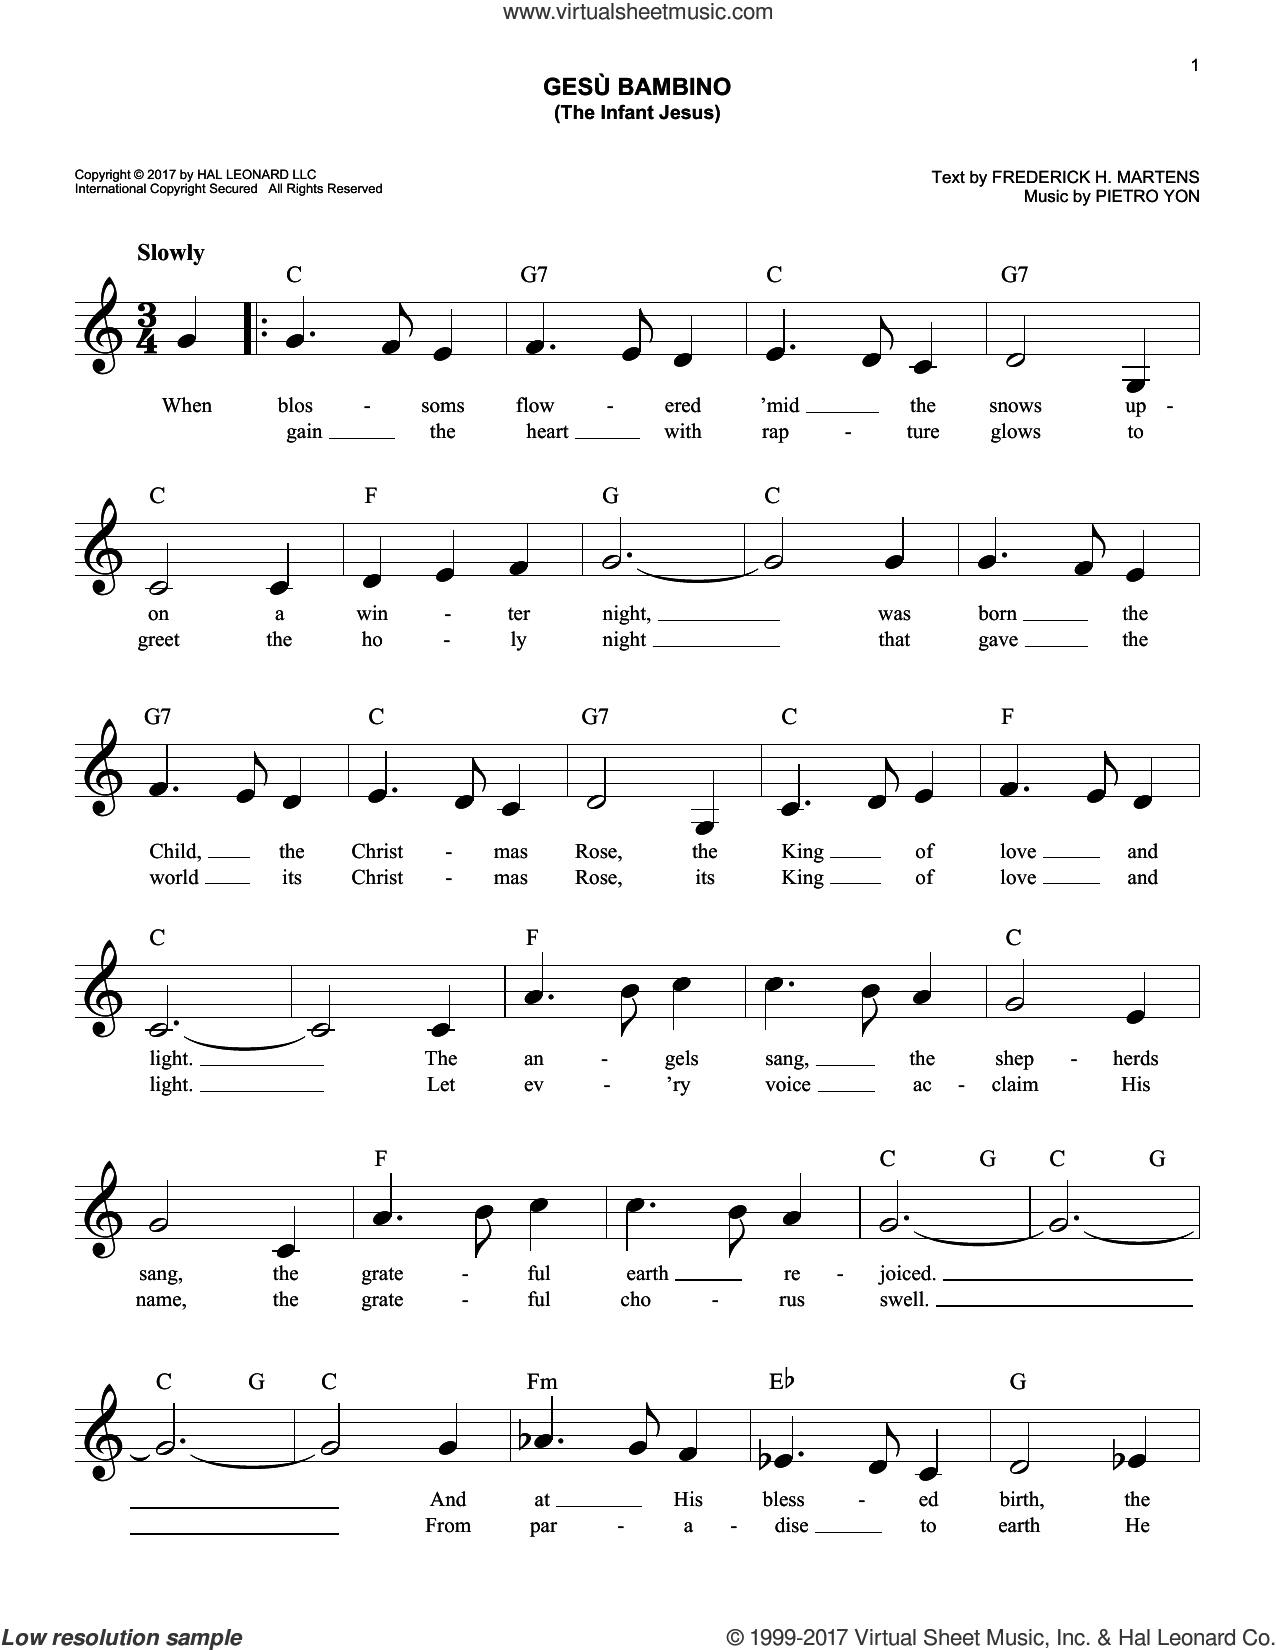 Gesu Bambino (The Infant Jesus) sheet music for voice and other instruments (fake book) by Pietro Yon and Frederick H. Martens, intermediate skill level